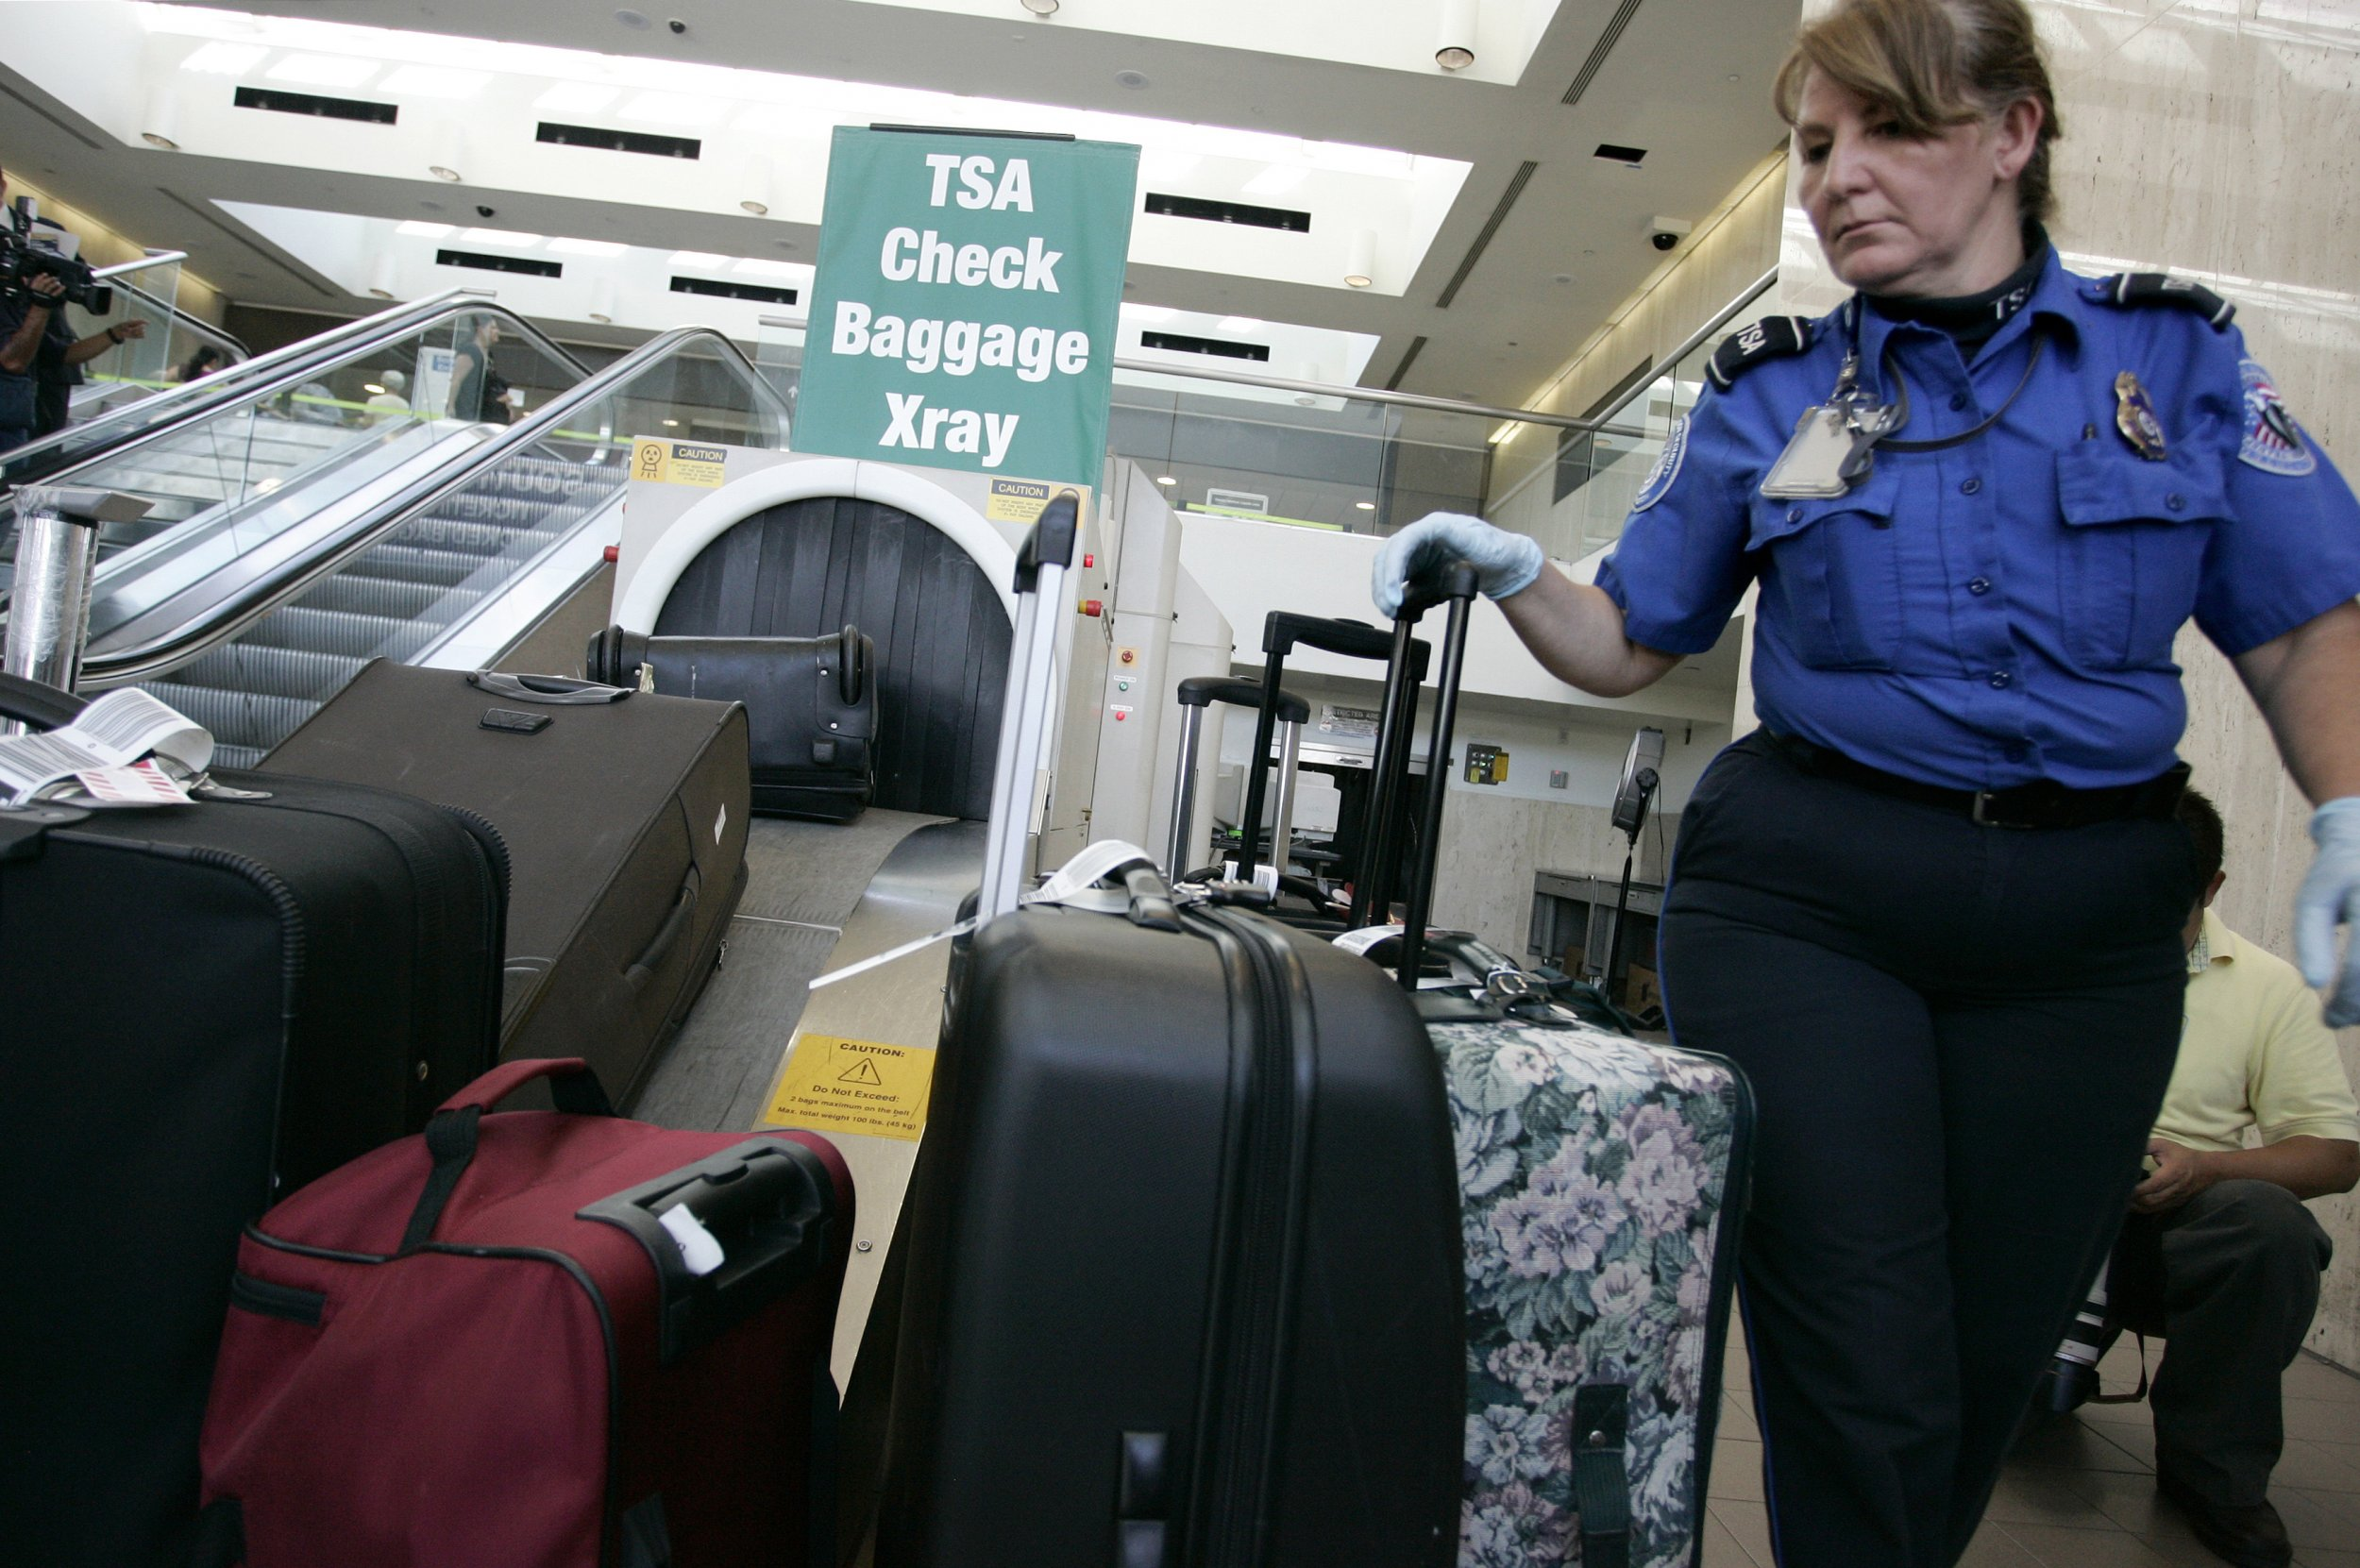 Airport Security Fails To Detect 95 Of Fake Explosives